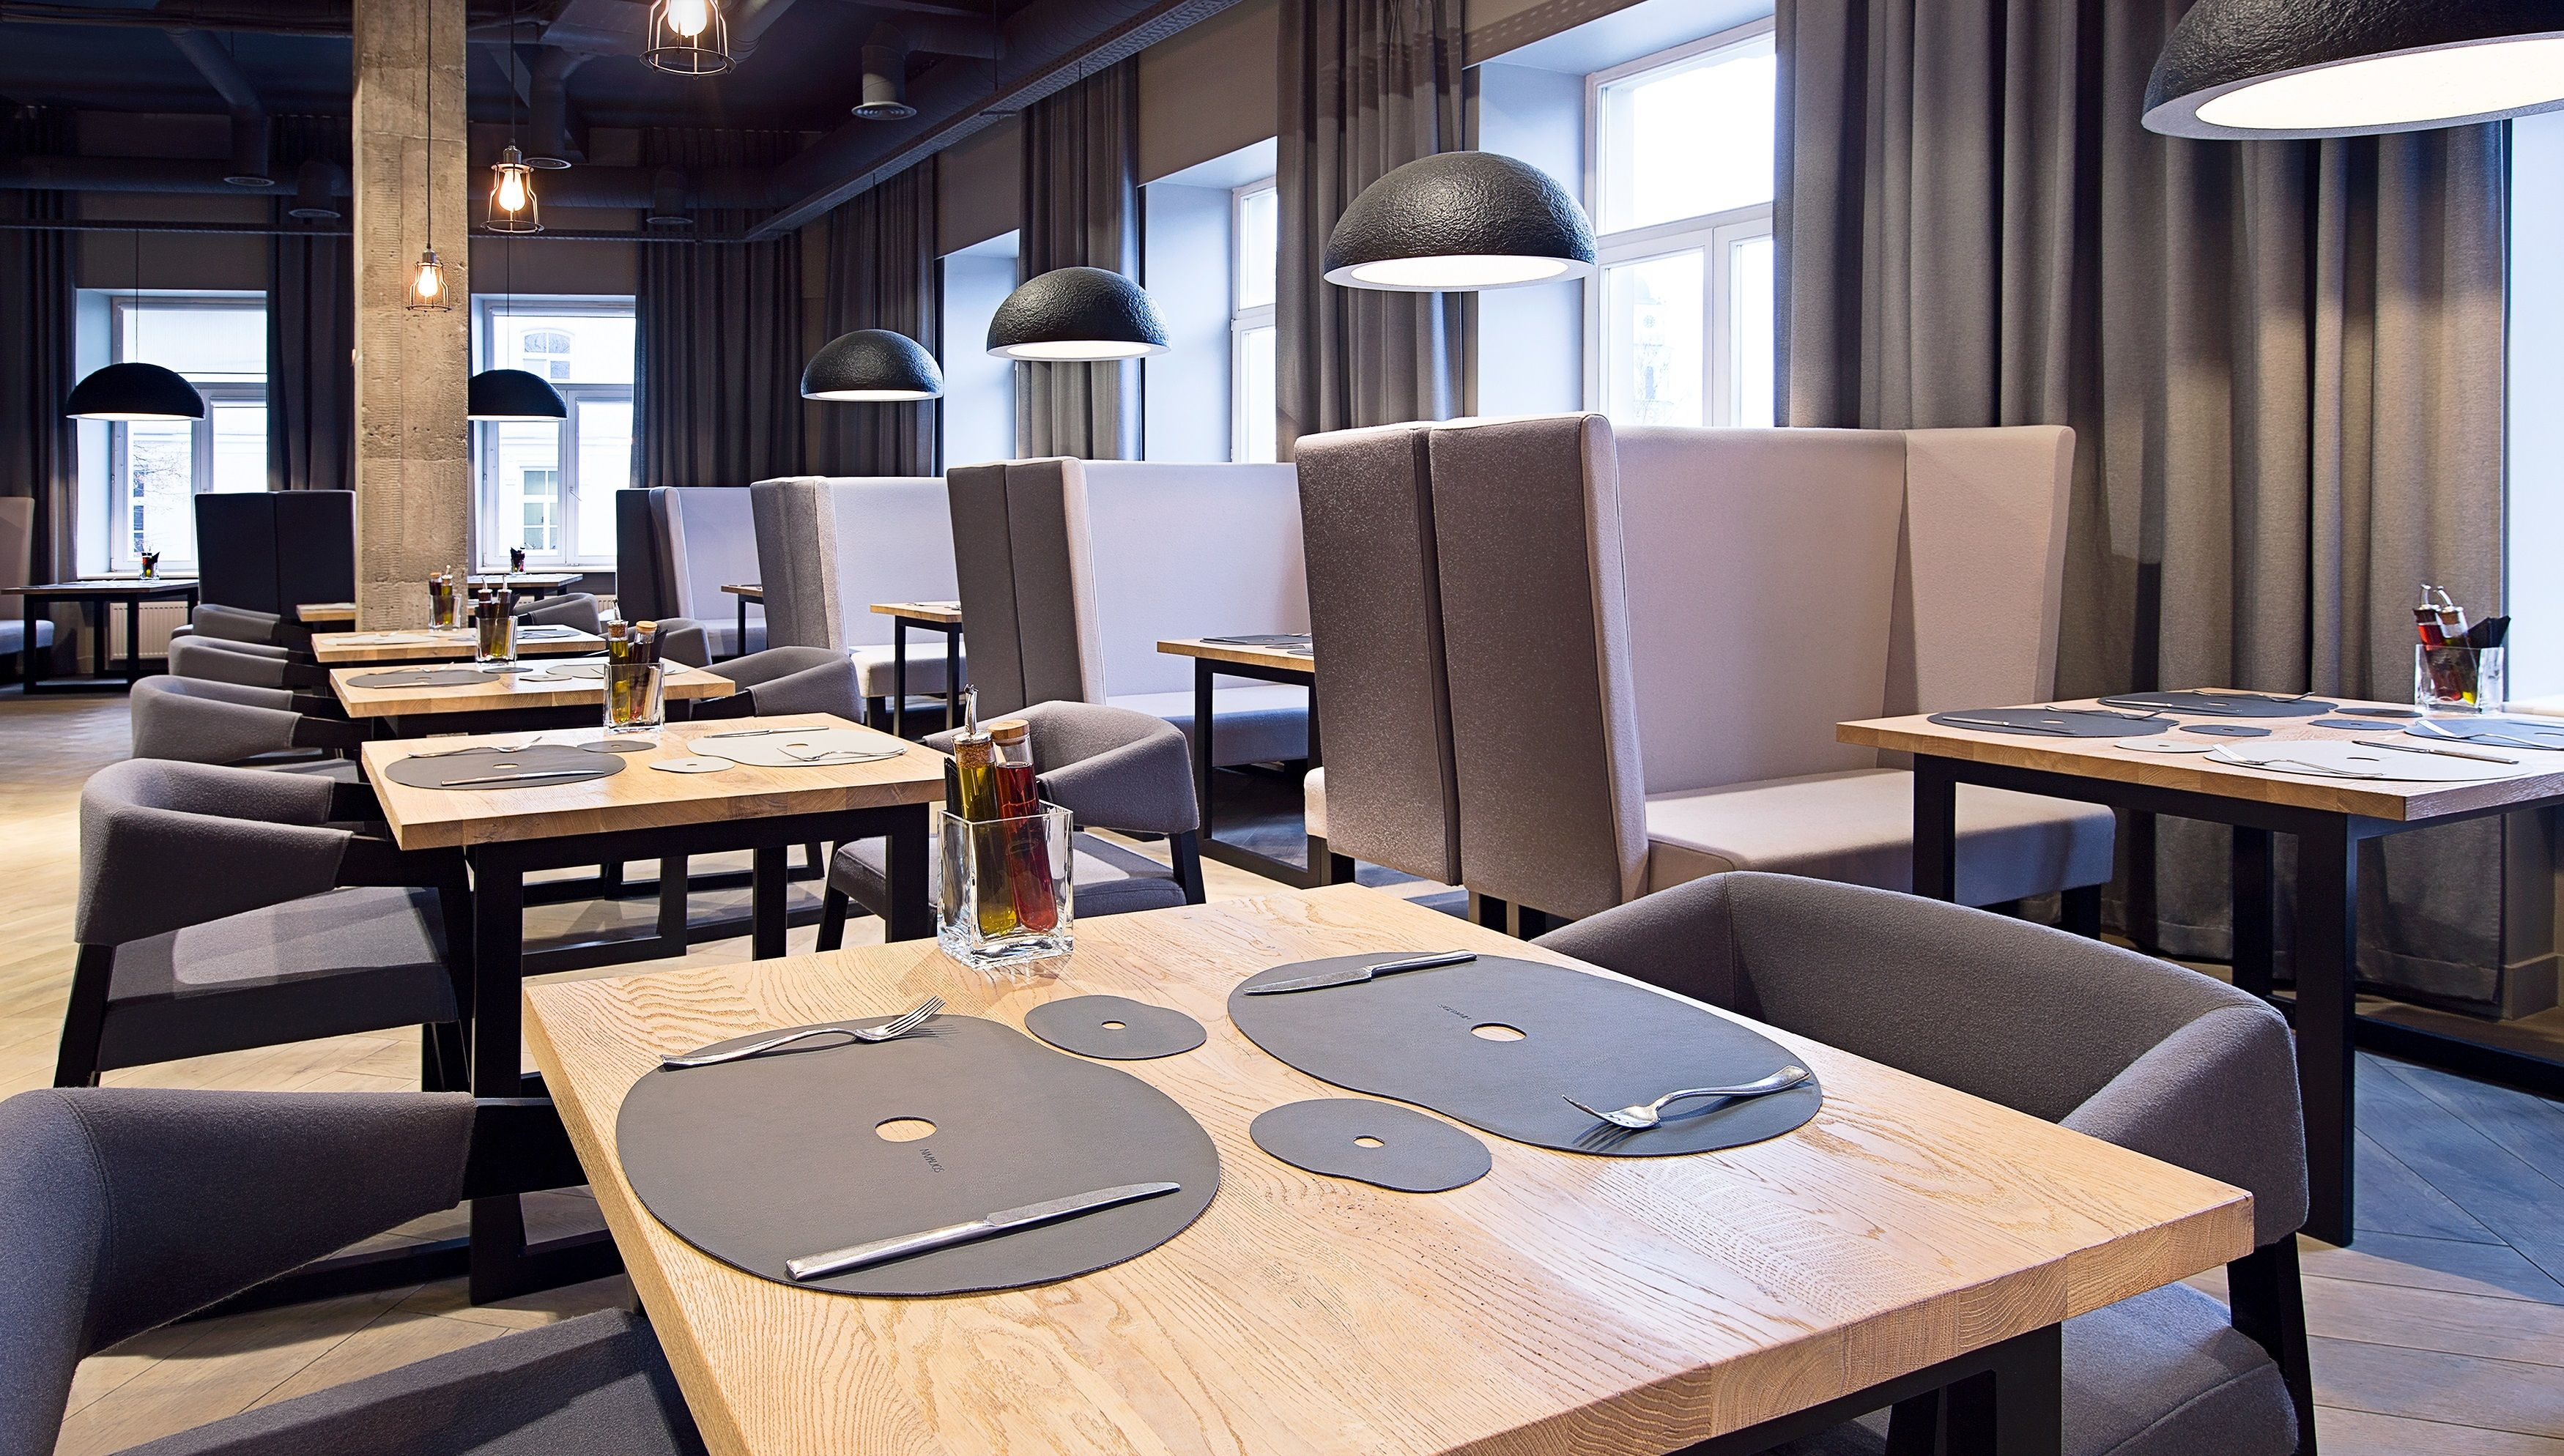 design room at lovely home kitchen ideas decorating restaurant mats with modern style